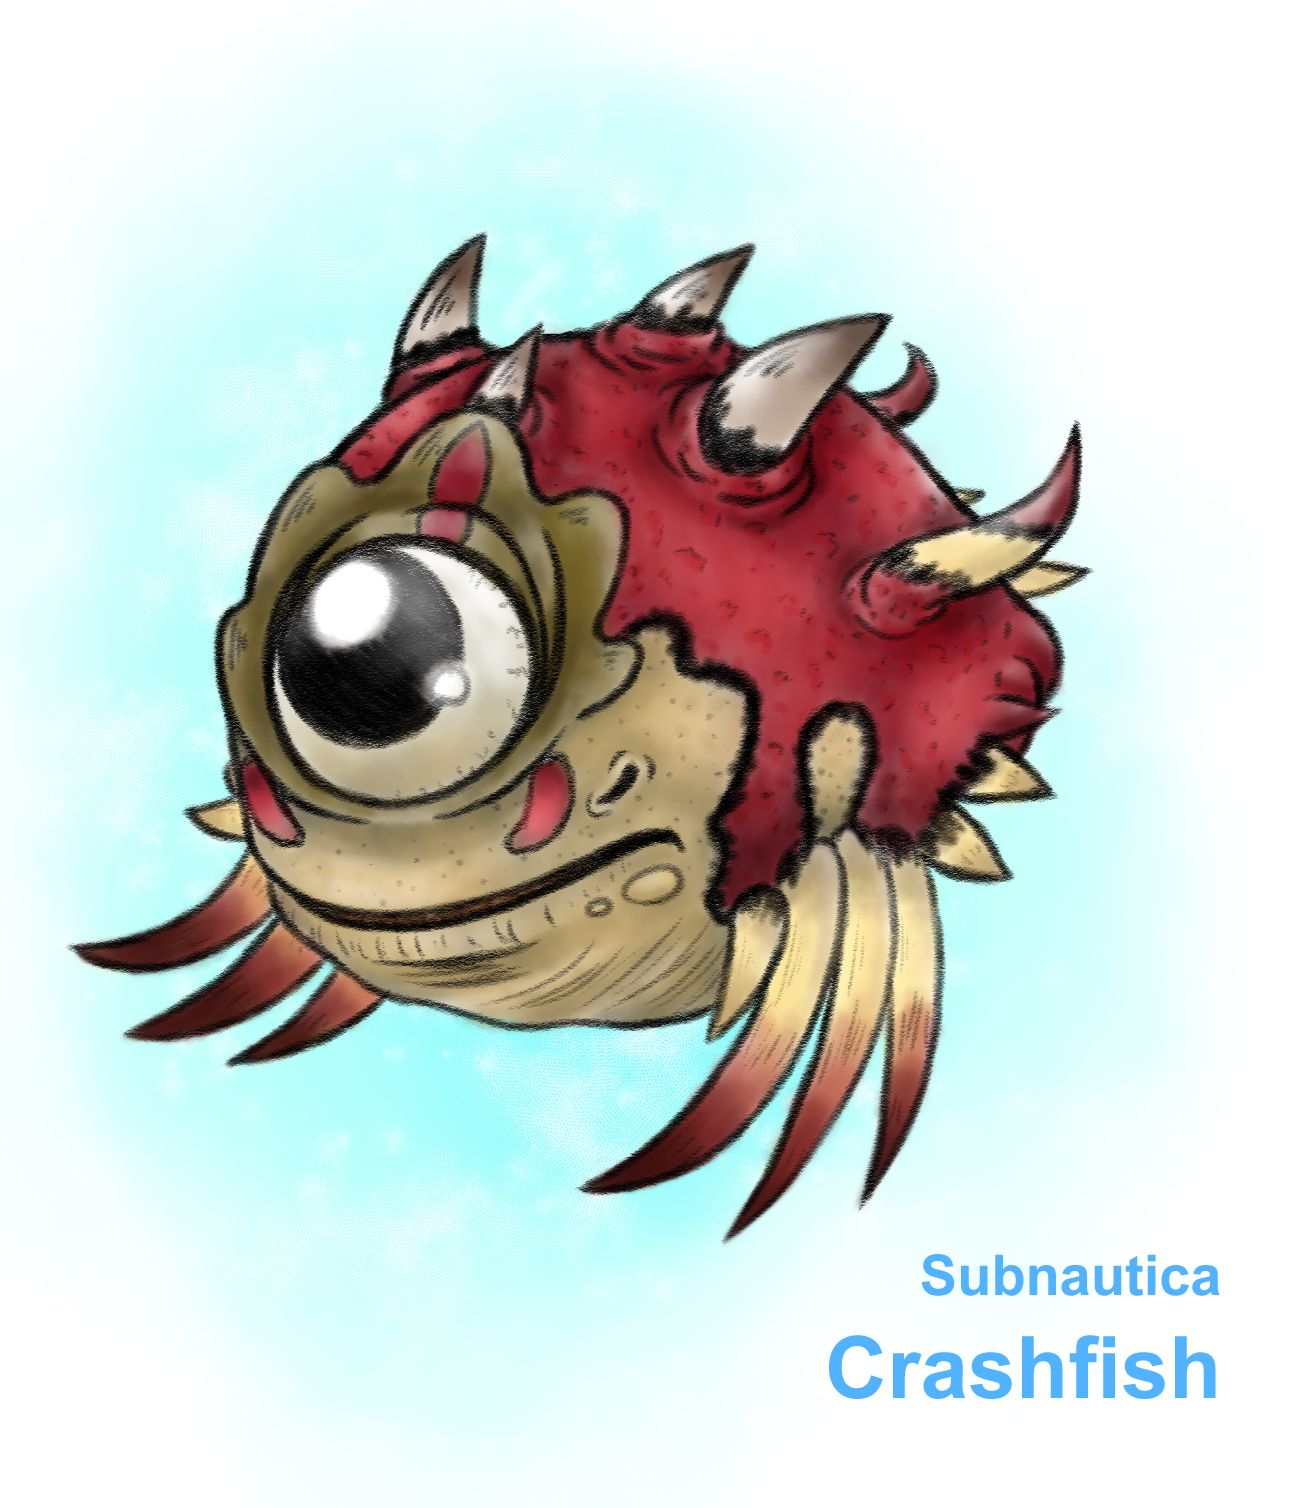 Crashfish Subnautica Subnautica Concept Art Zombie Lover Cool Monsters Subnautica how to find scanner room fragments subnautica is a under water survival game and heres a beginners guide how. subnautica concept art